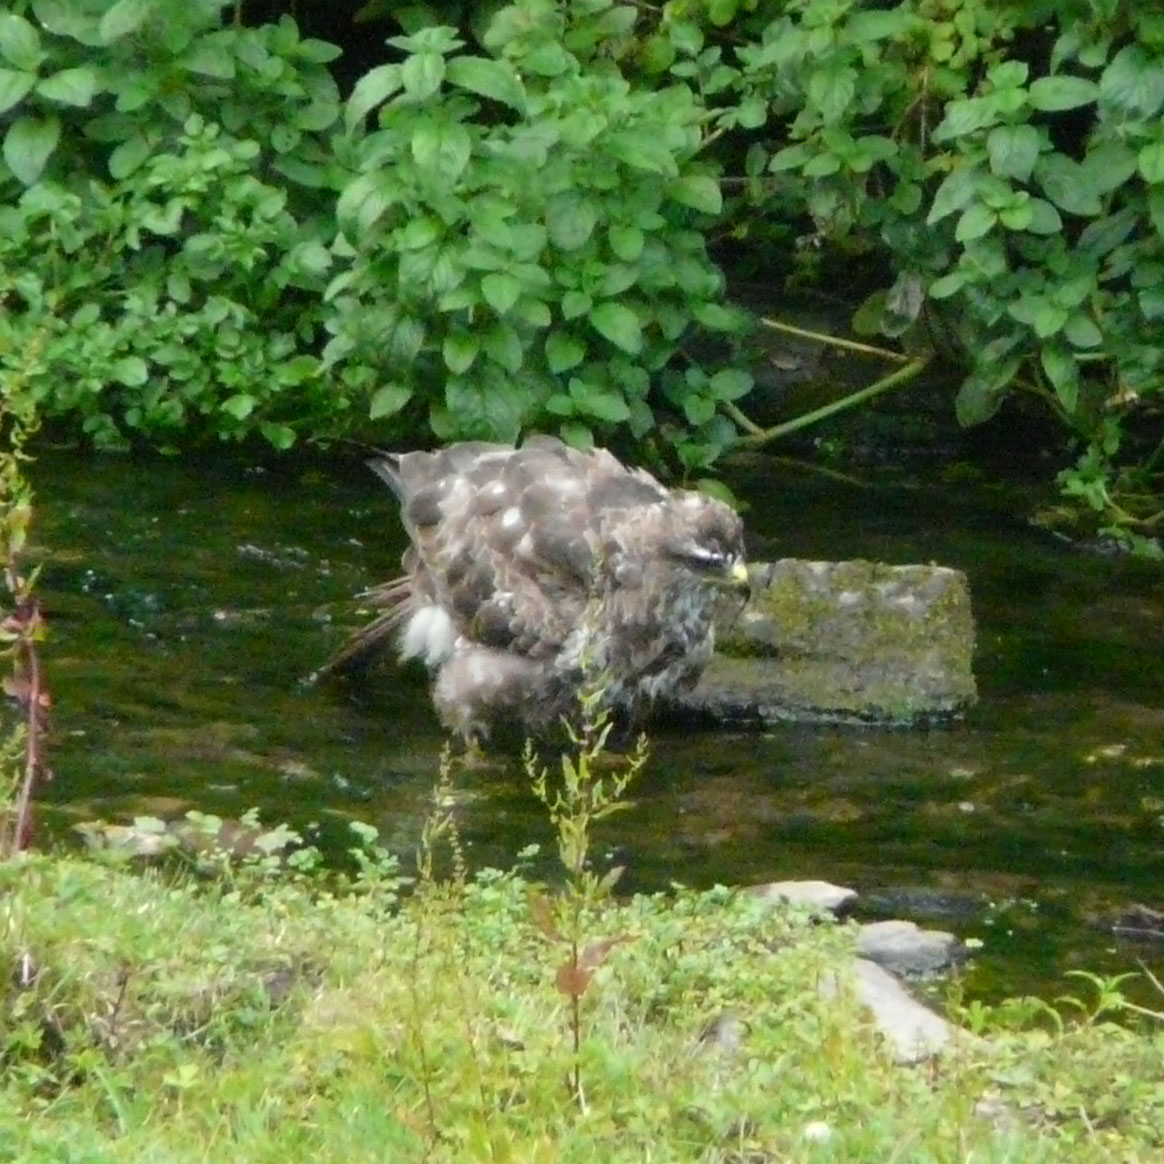 Bathing Buzzard